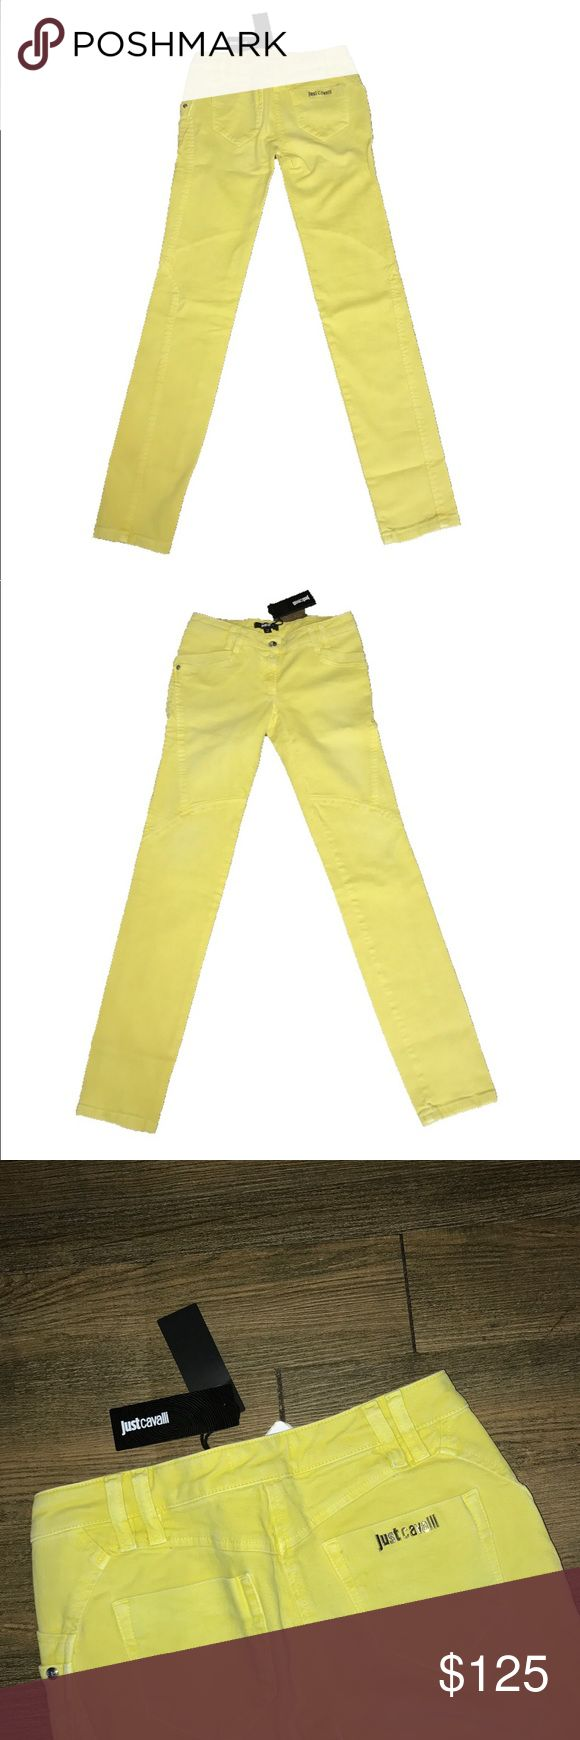 "New Authentic Just Cavalli skinny jeans sz 26 New with tags Authentic Just Cavalli yellow factory distressed skinny jeans sz 26. Waist measures 13.5 inches flat Front rise 7 inches inseam 29"" inches Just Cavalli Jeans Skinny"